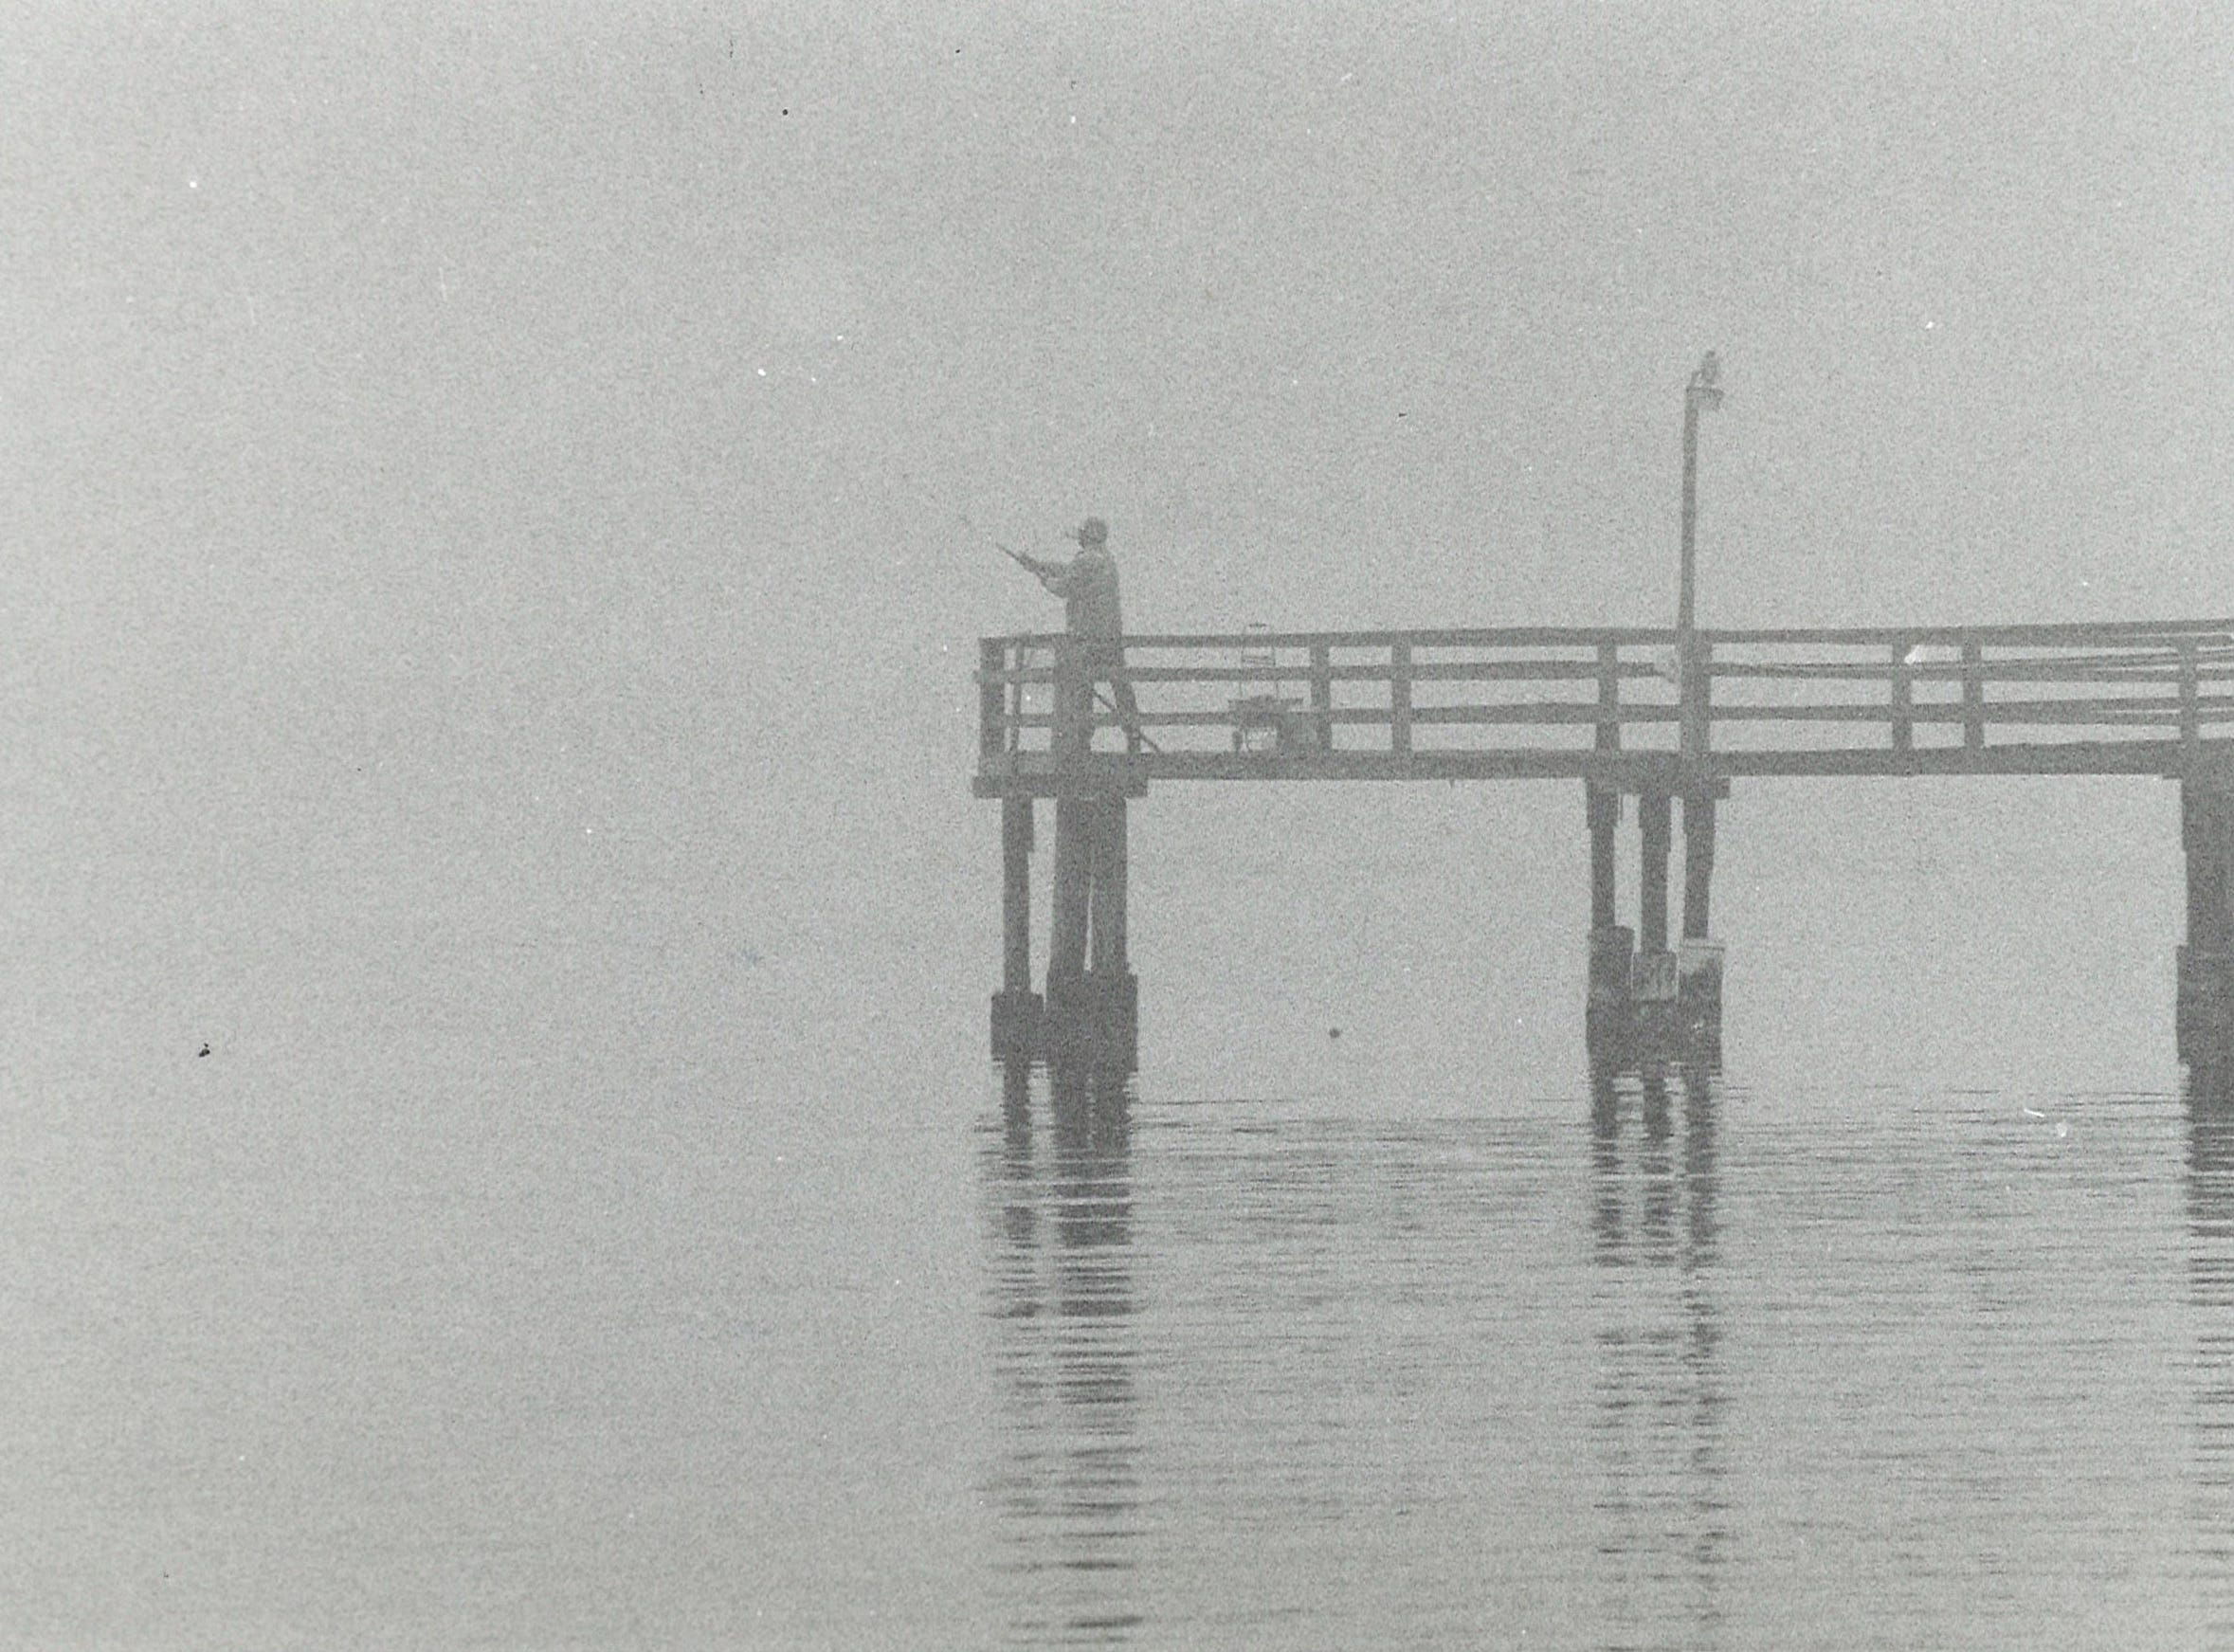 A fisherman braves the heavy fog that blanketed Corpus Christi Bay as he casts off from Oso Pier on Nov. 11, 1994.